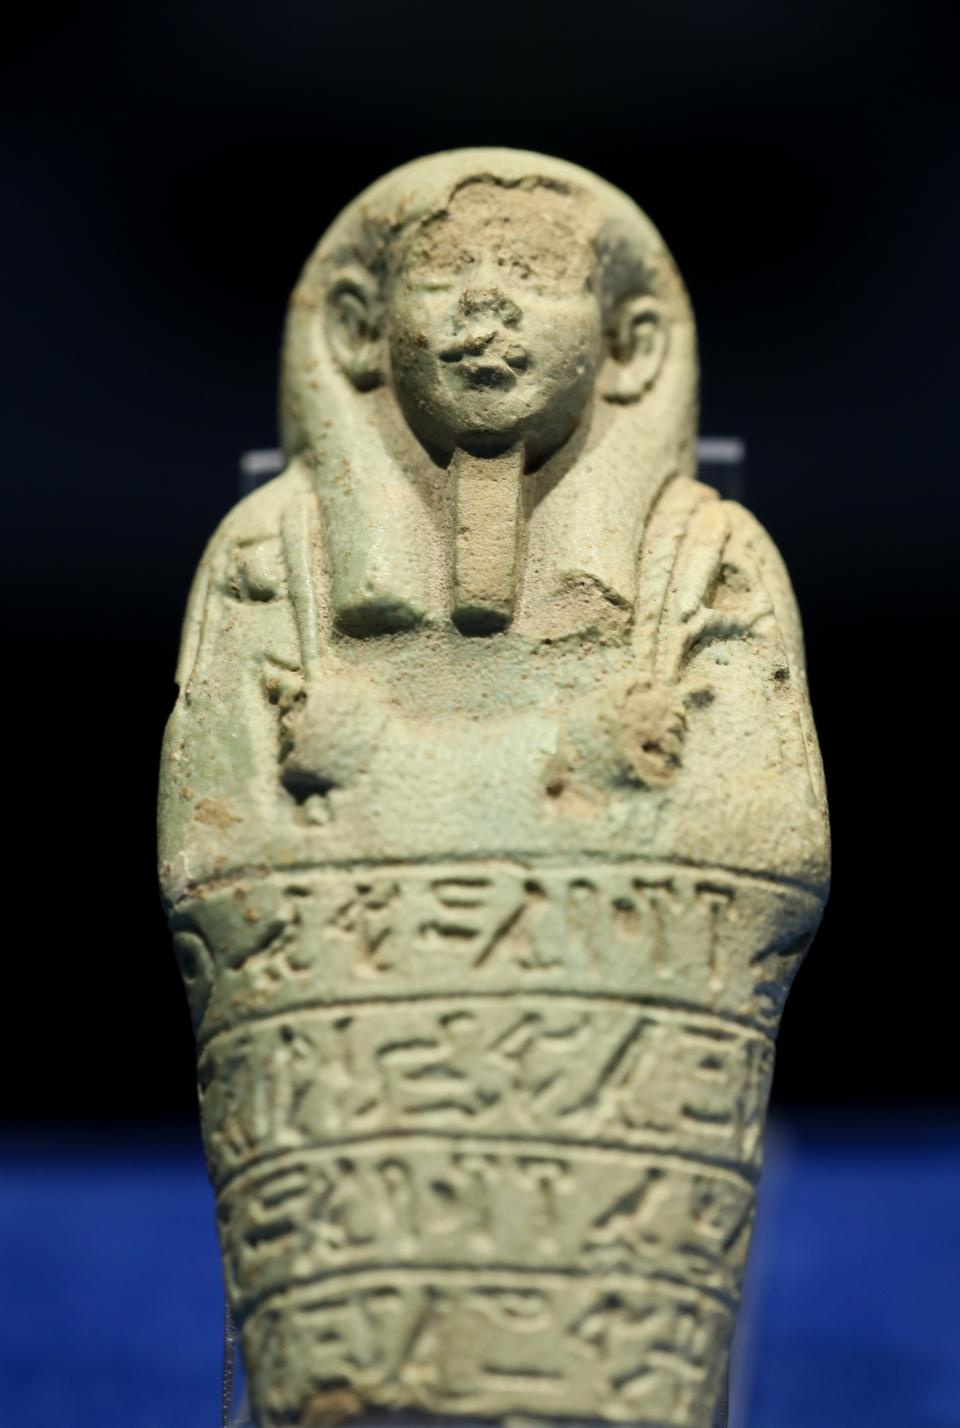 An ushabti figurine with hieroglyphic writing on it on display at the Izmir Archaeological Museum.